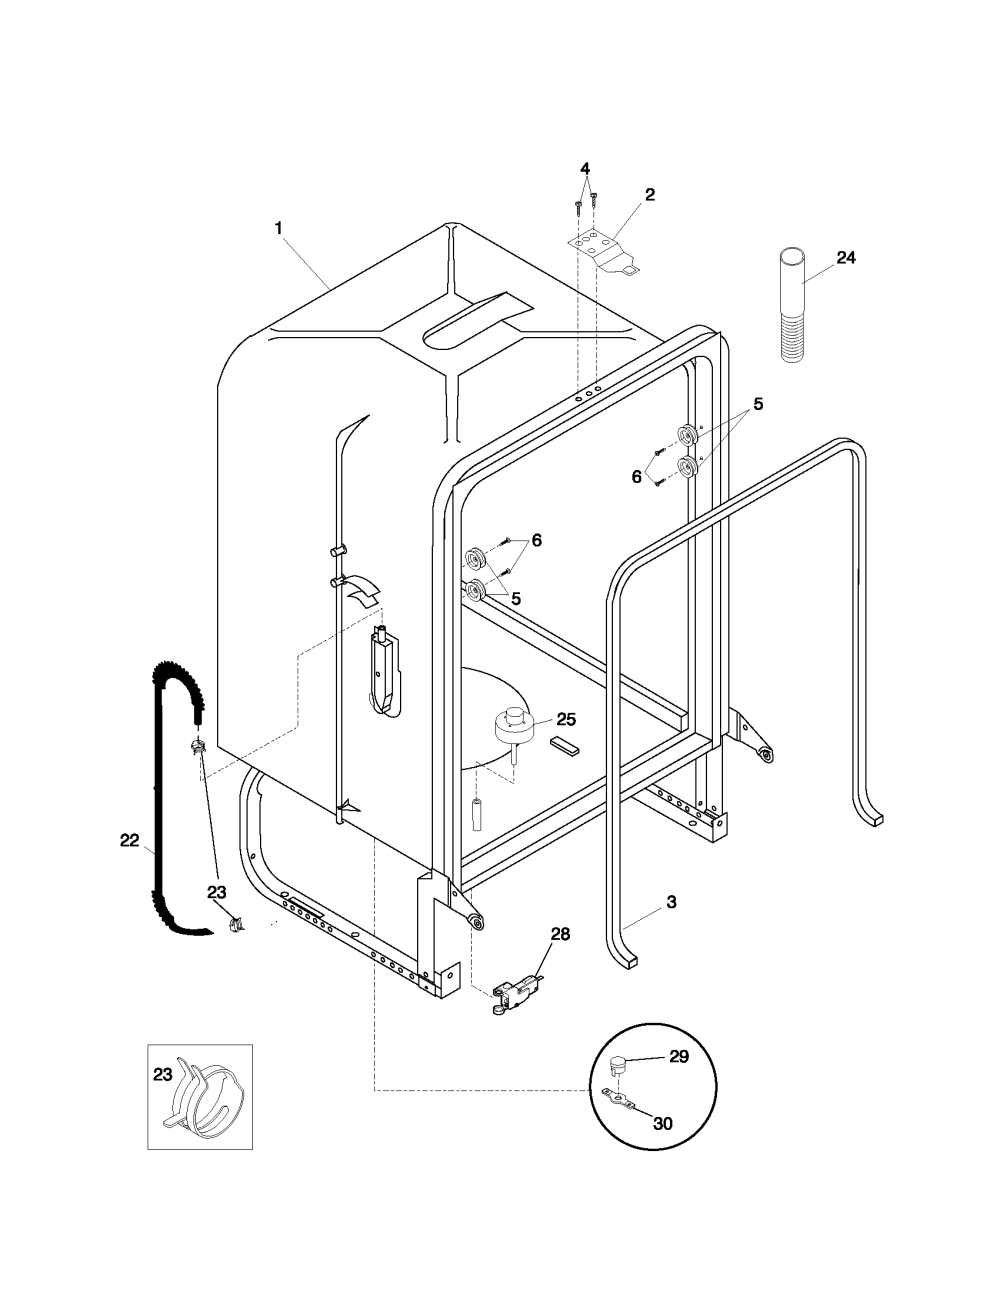 medium resolution of pldb999cc0 dishwasher tub parts diagram